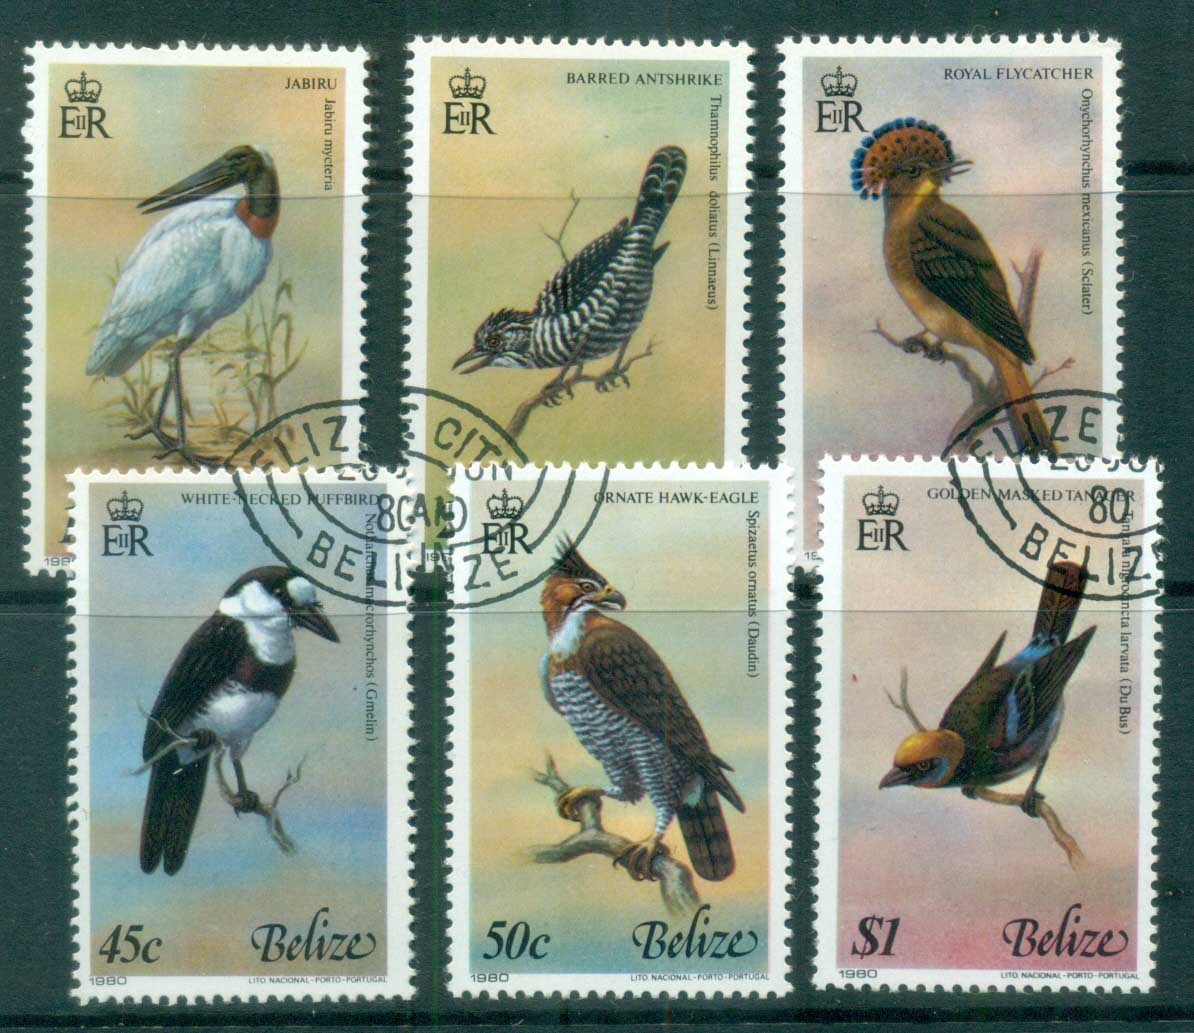 Belize 1980 Birds of Belize CTO